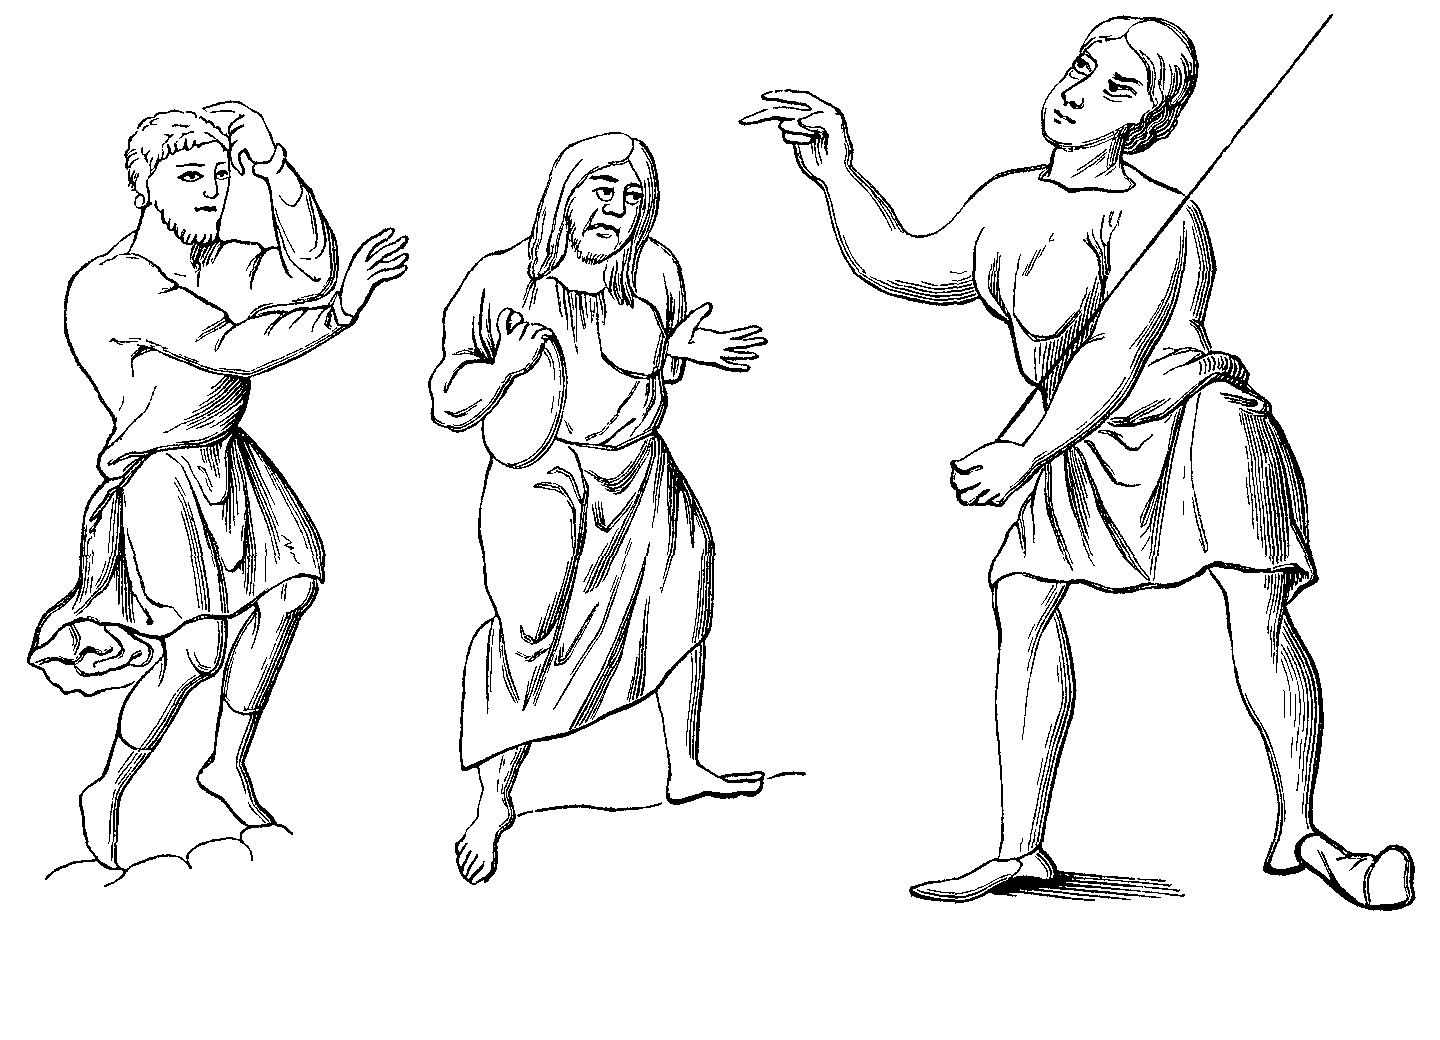 Costumes of slaves or serfs